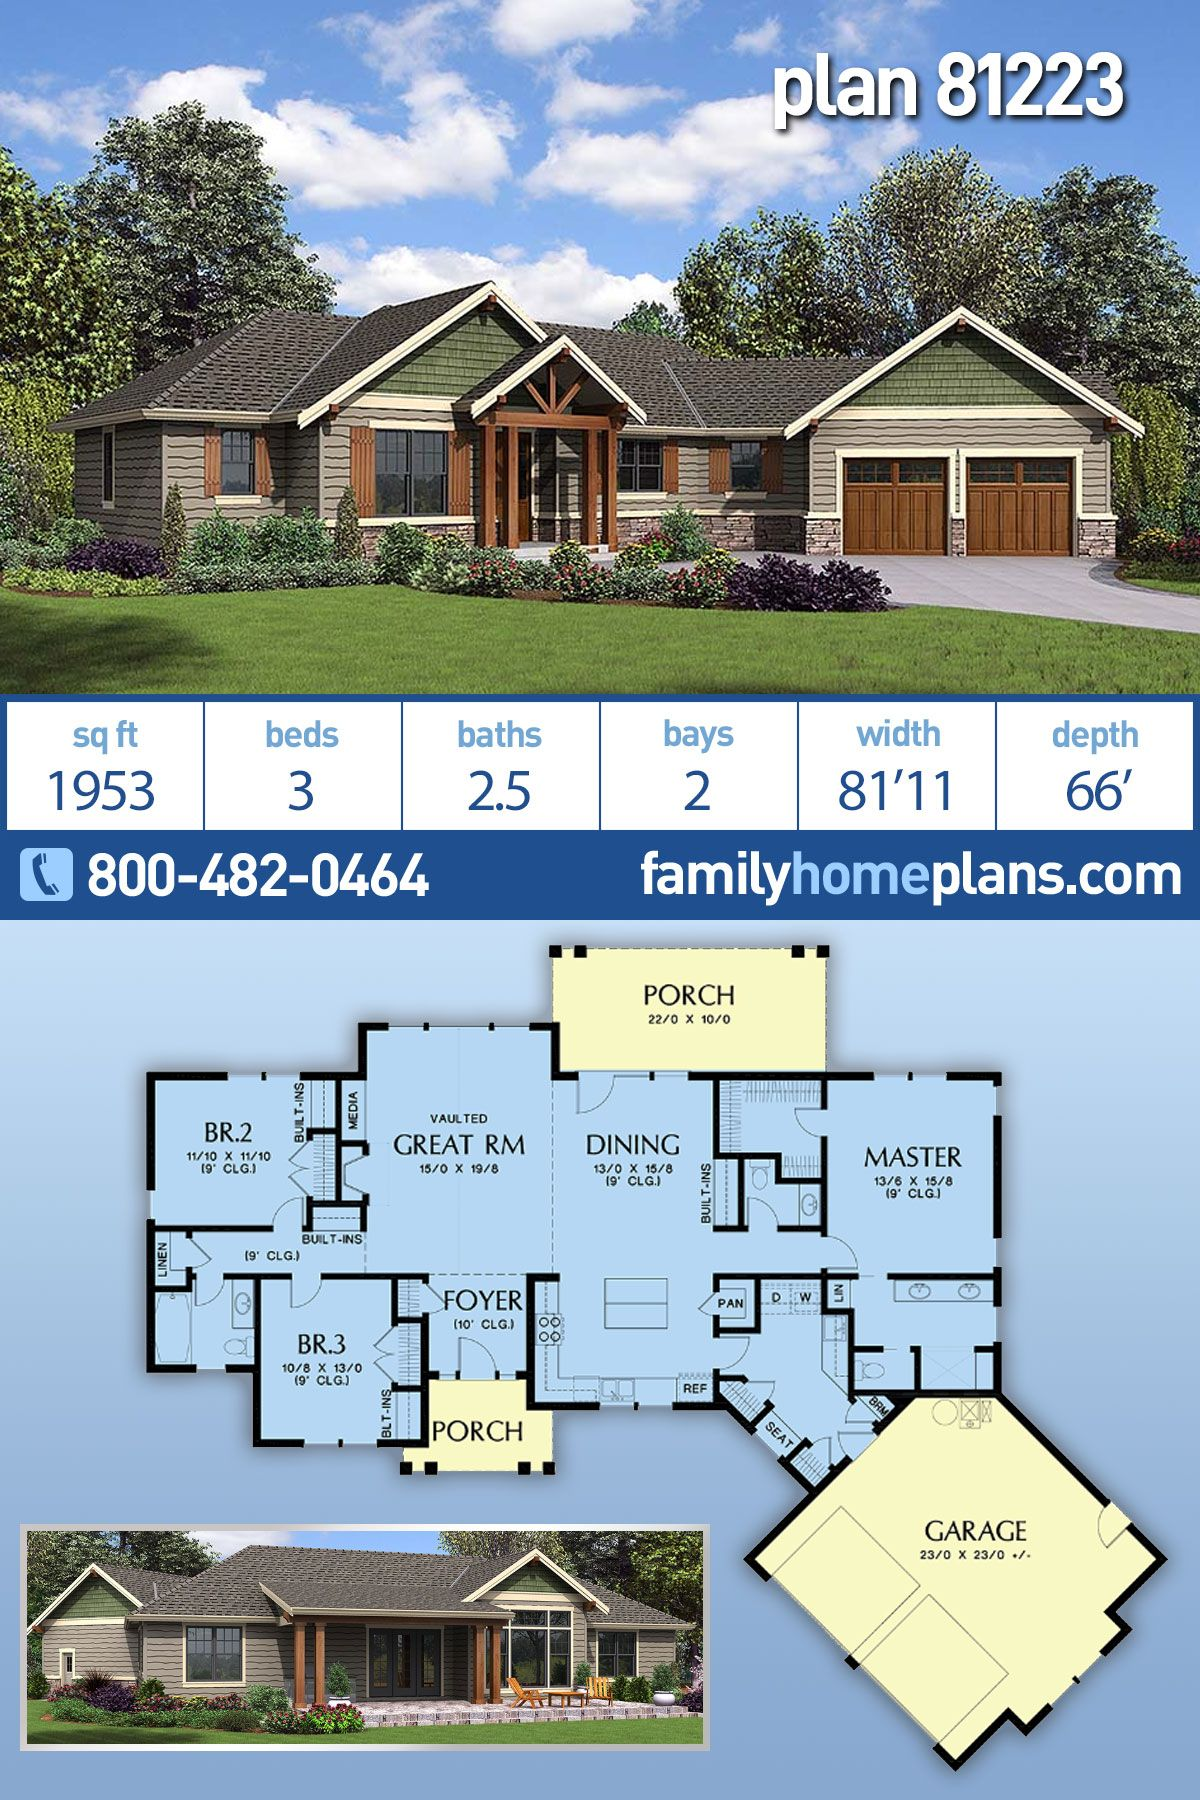 Ranch Style House Plan 81223 With 3 Bed 3 Bath 2 Car Garage